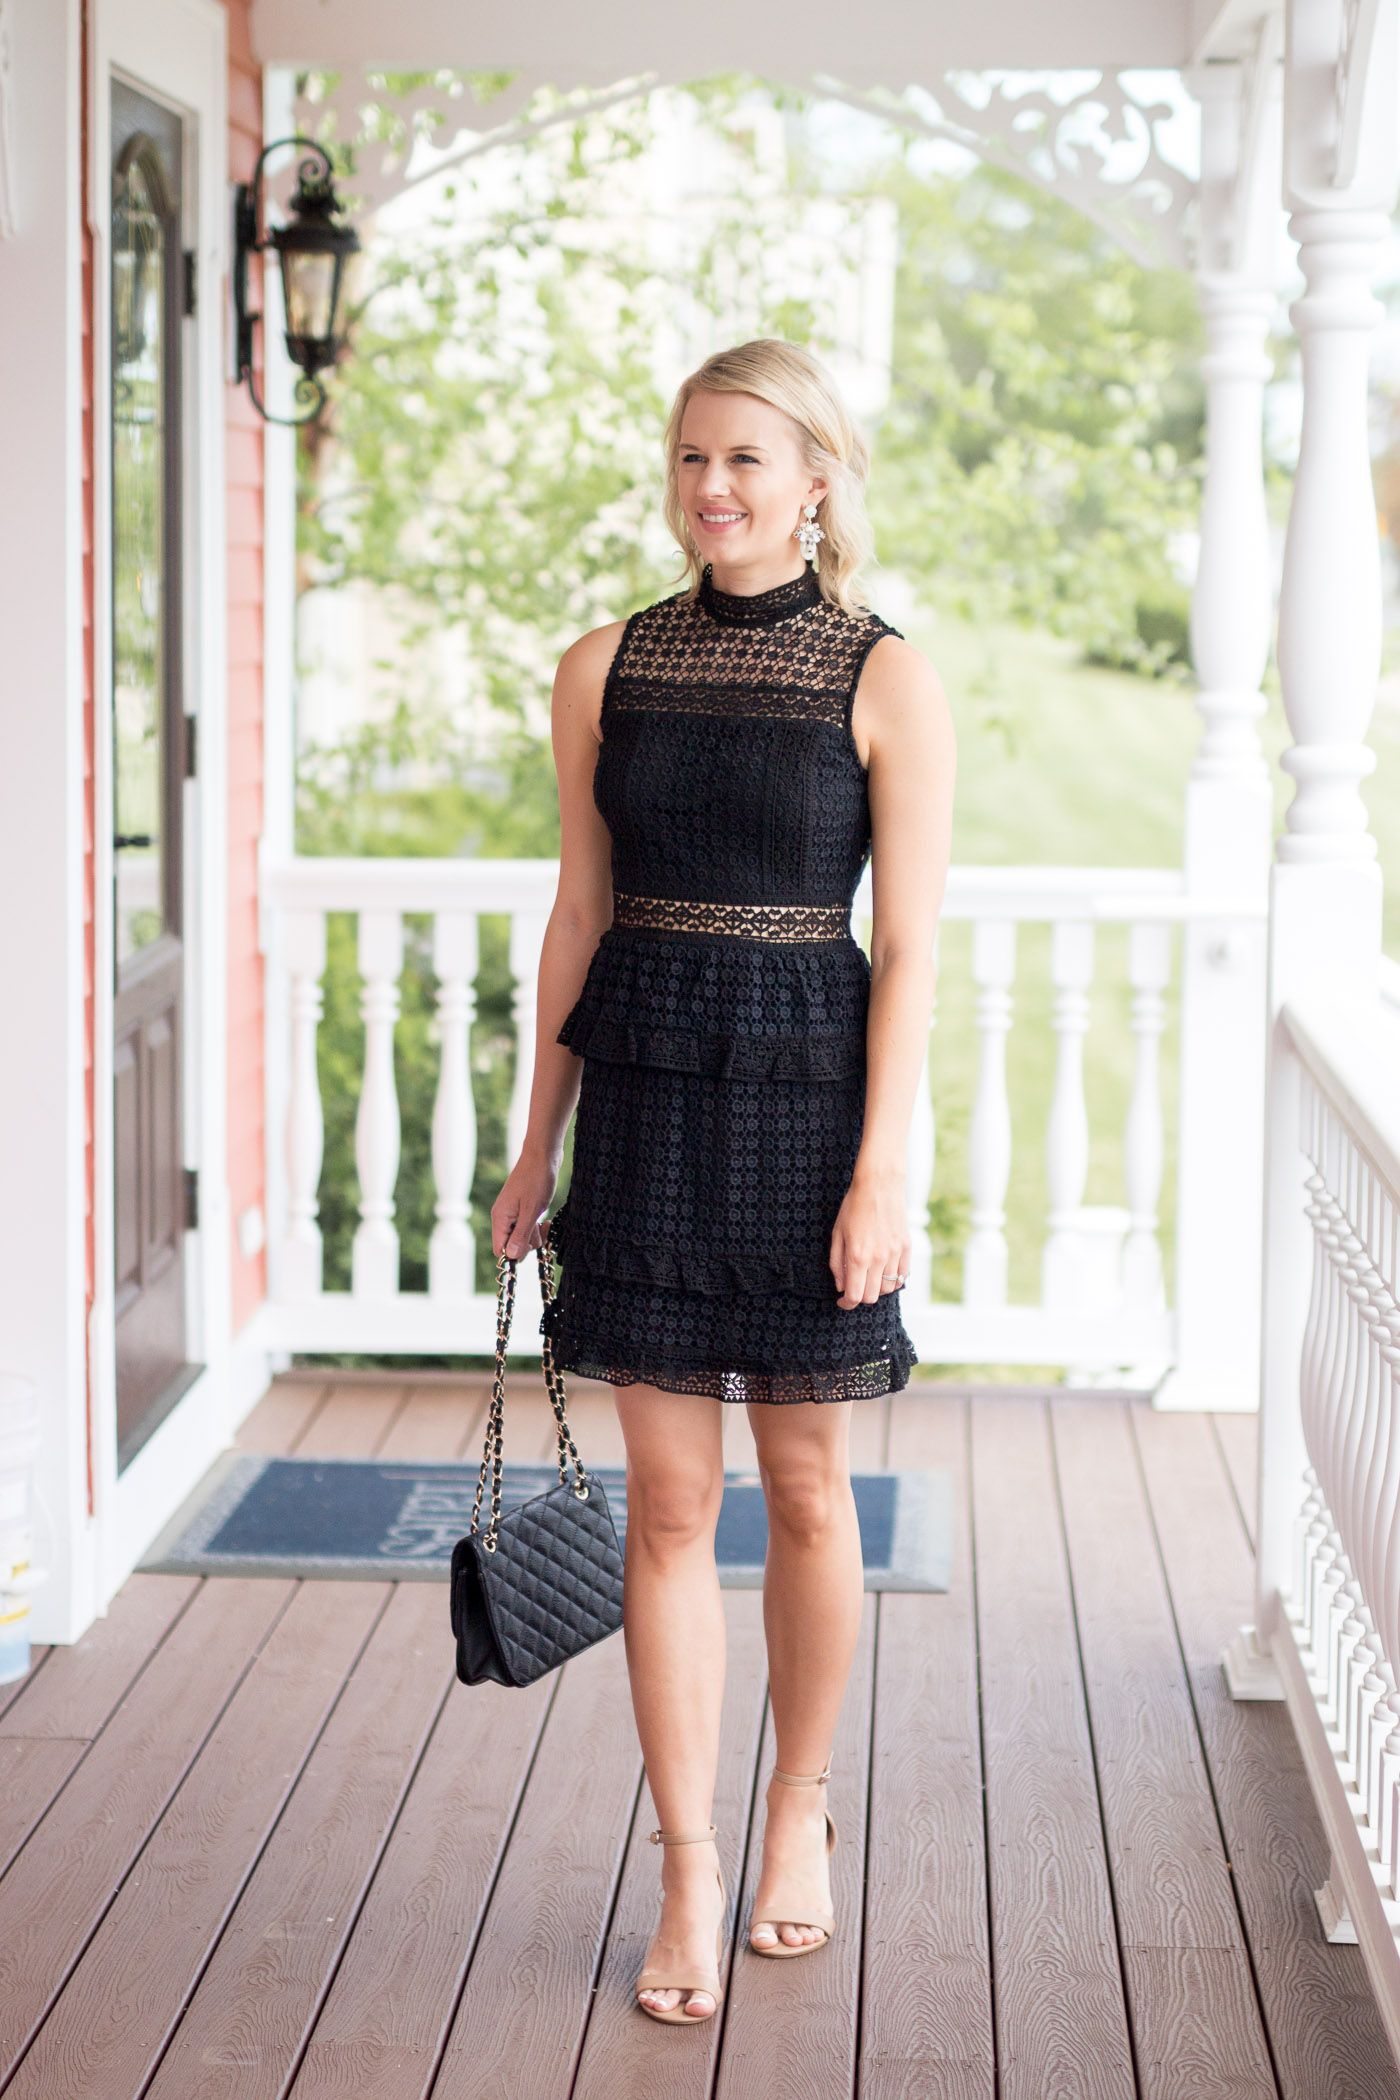 The Perfect Little Black Dress For Wedding Season Treats And Trends Black Lace Dress Outfit Little Black Dress Perfect Little Black Dress [ 2100 x 1400 Pixel ]